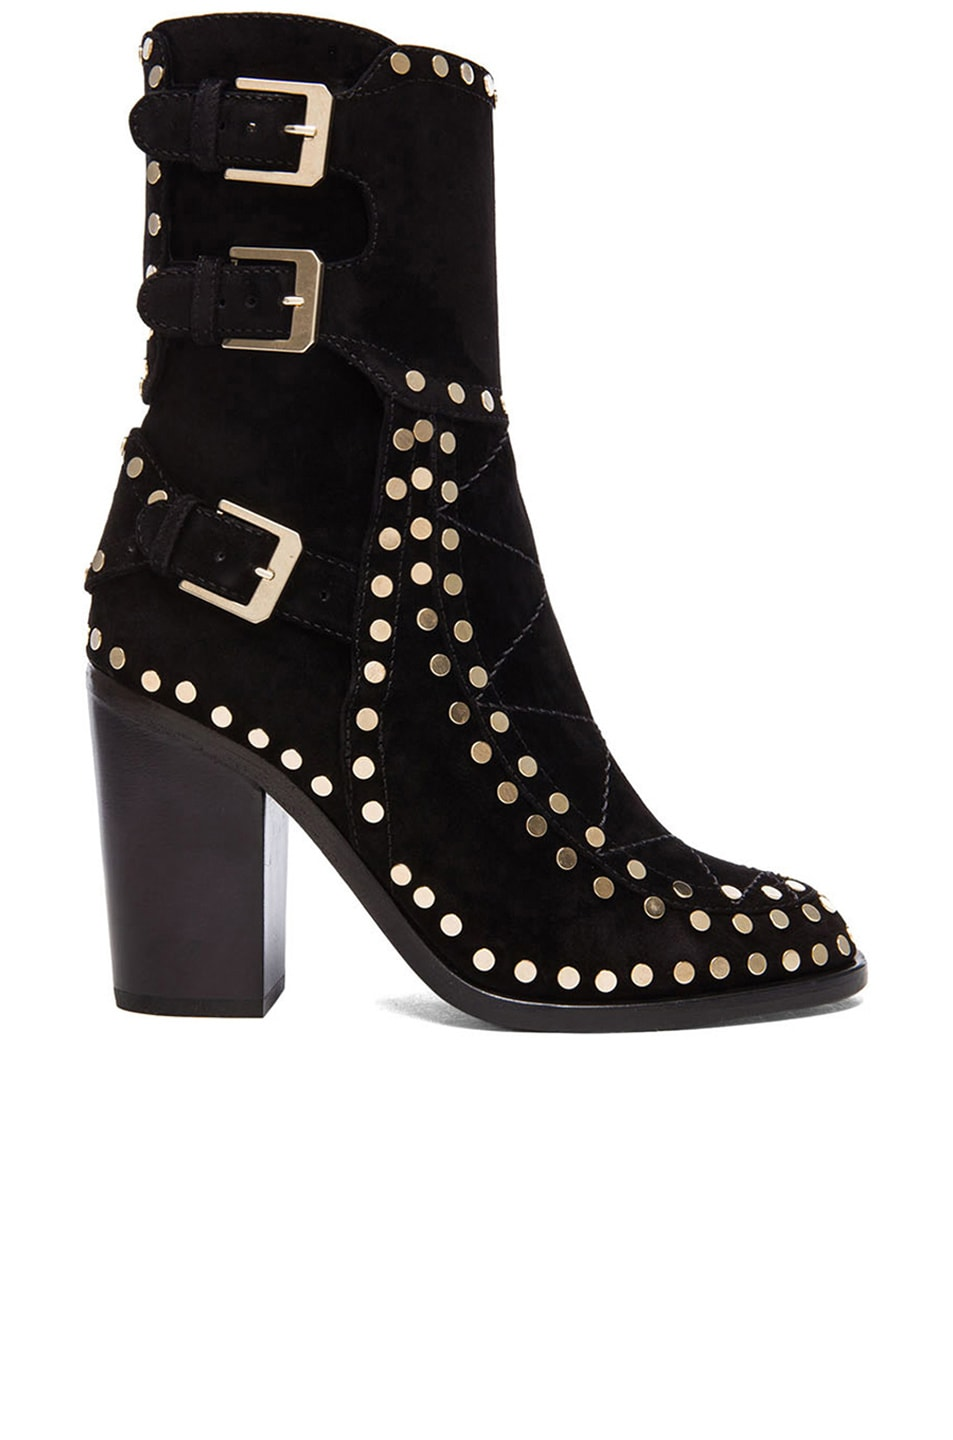 Image 1 of Laurence Dacade Gehry Booties in Black & Gold